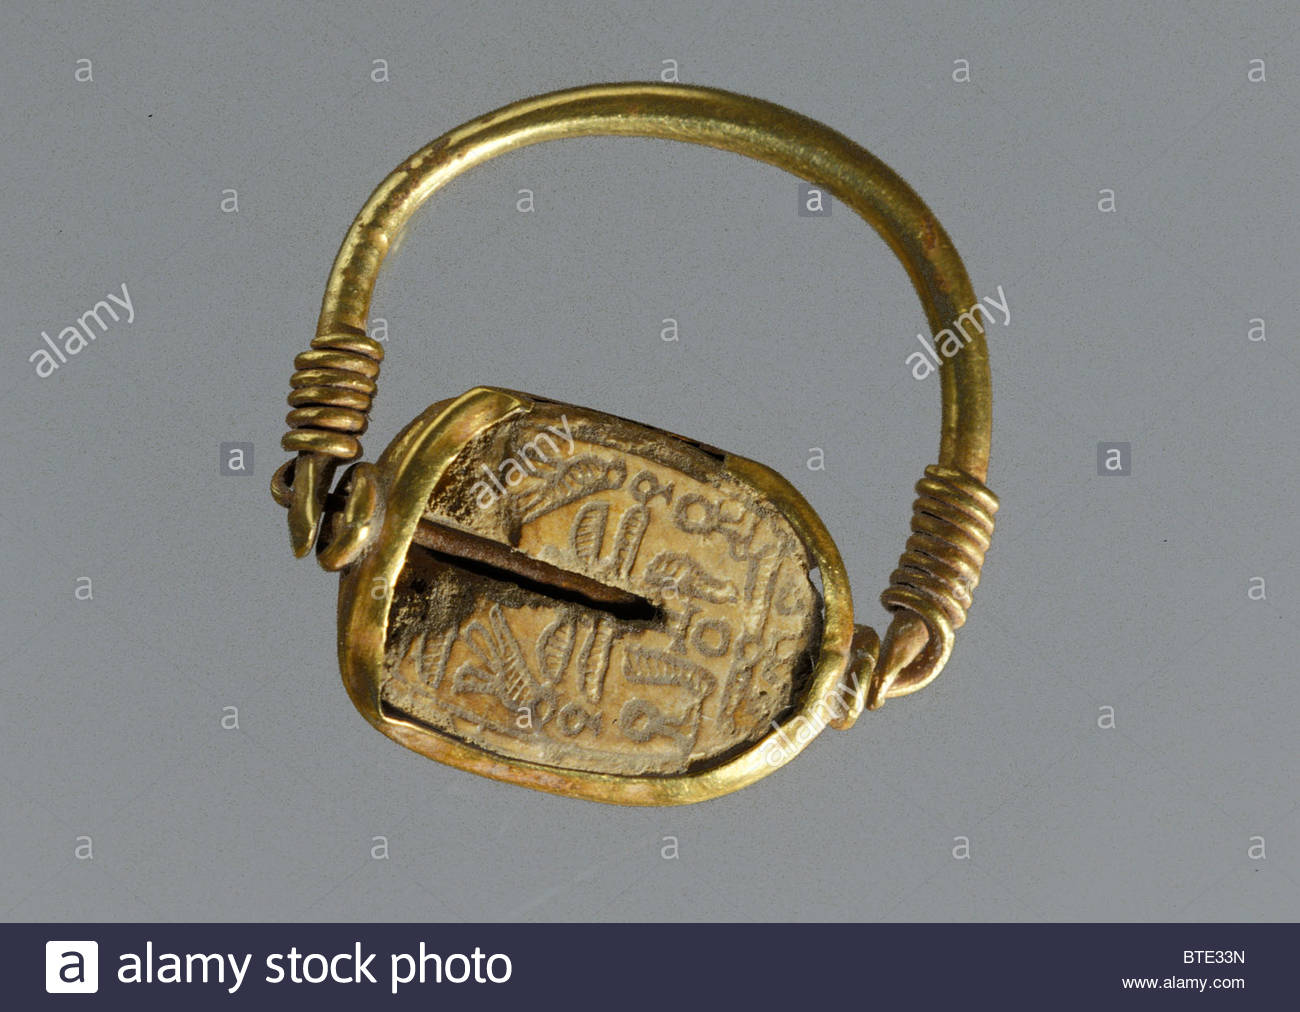 5426. Egyptian scarab ring, gold and ivory, perhaps a signet ring dating c. 10-9th. C. BC - Stock Image